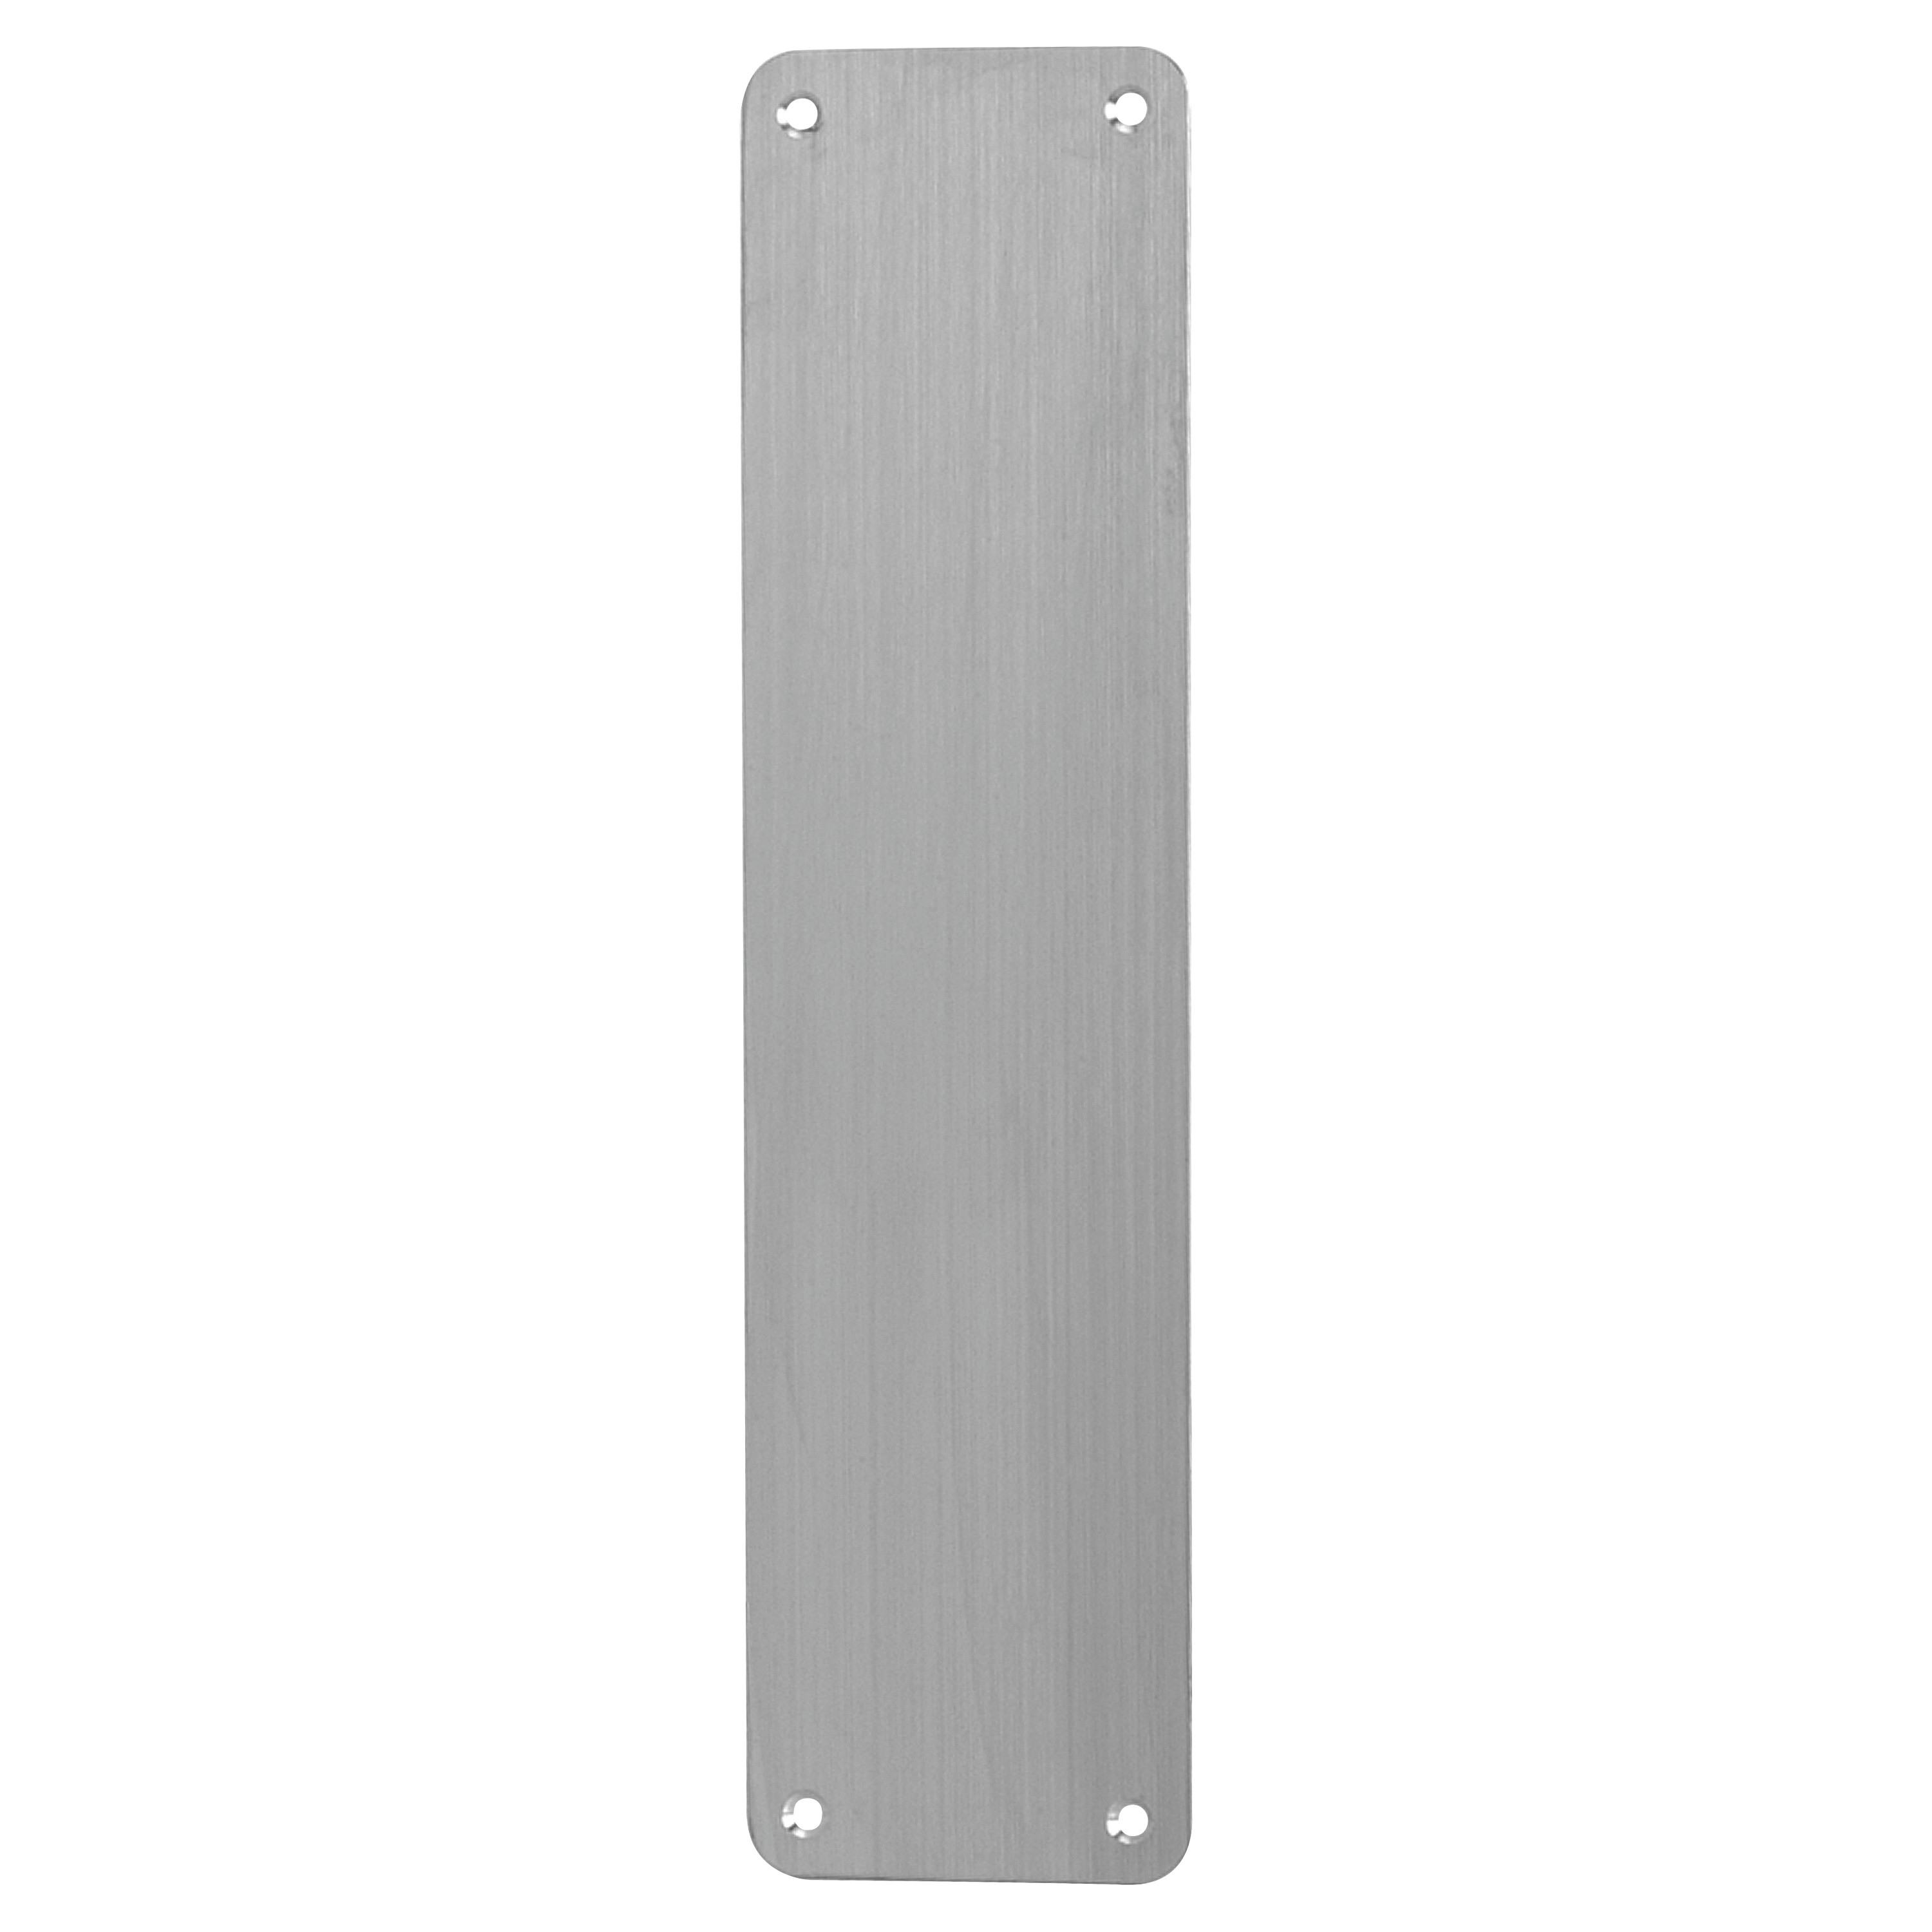 Altro Plain Finger Plate - 375 x 75 x 1.5mm - Satin Stainless)